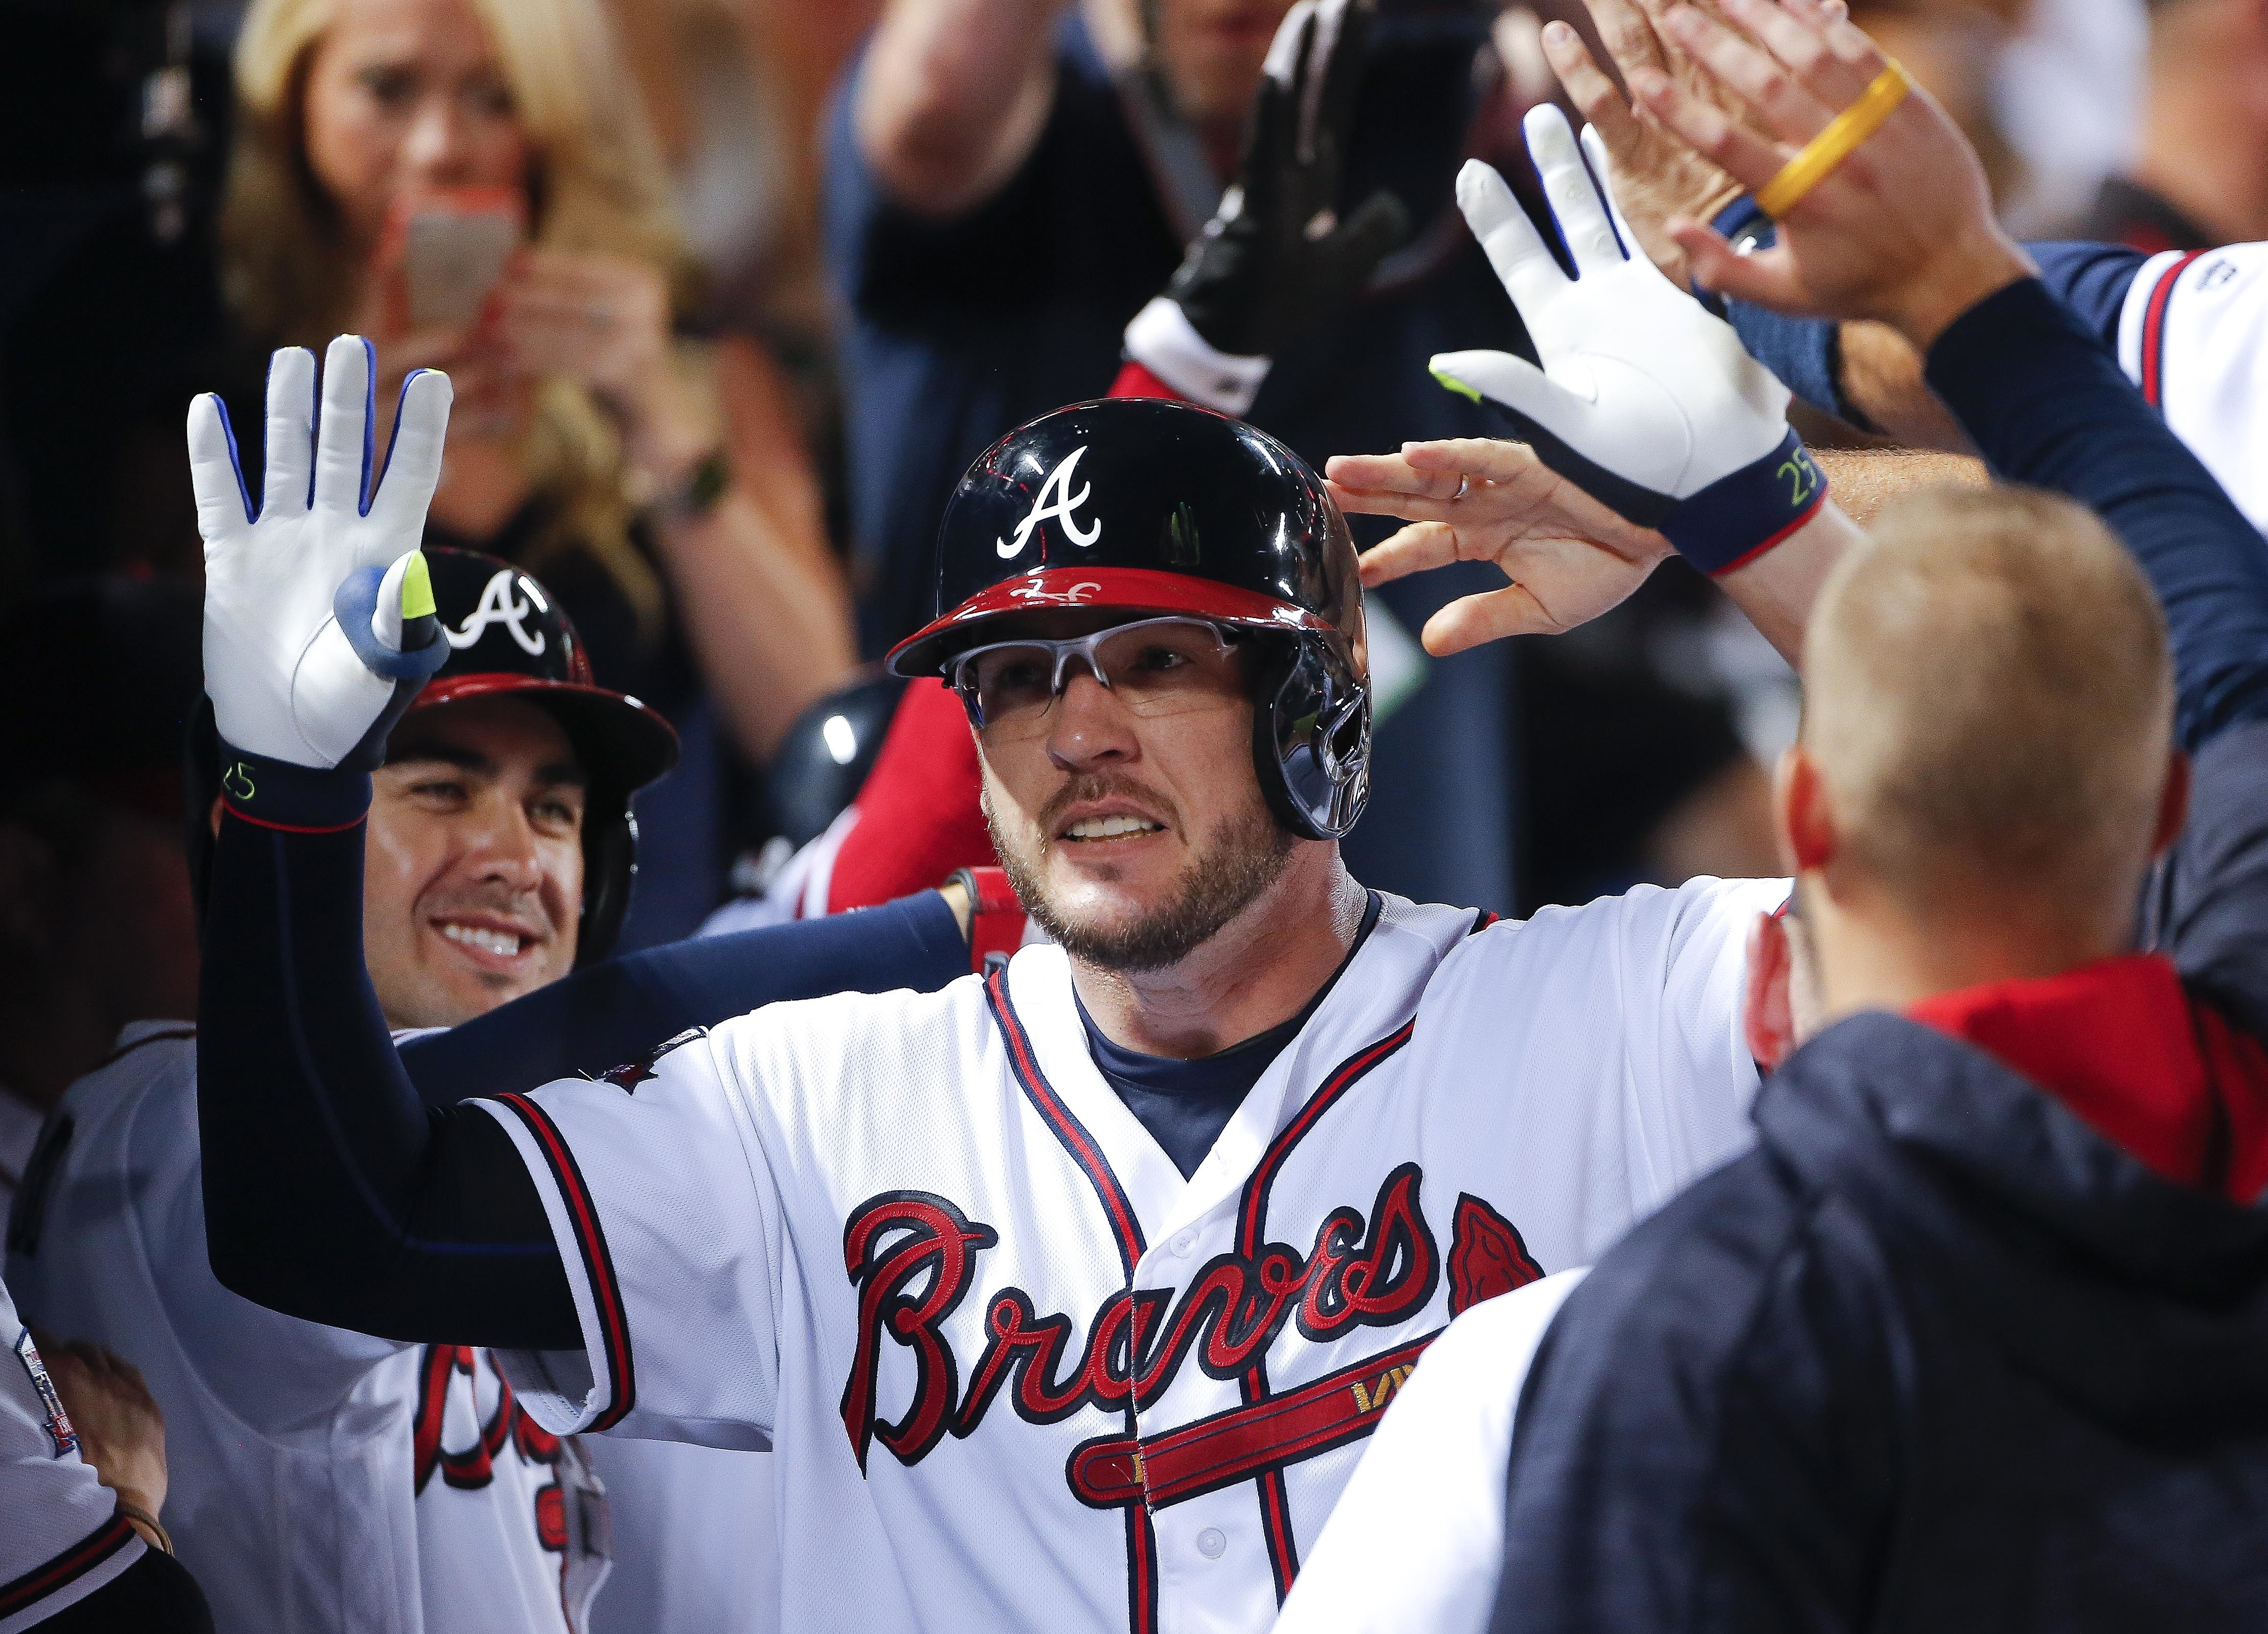 Atlanta Braves' Tyler Flowers celebrates in the dugout after hitting a game-tying home run in the ninth inning of a baseball game against the Miami Marlins, Friday, July 1, 2016, in Atlanta. (AP Photo/John Bazemore)